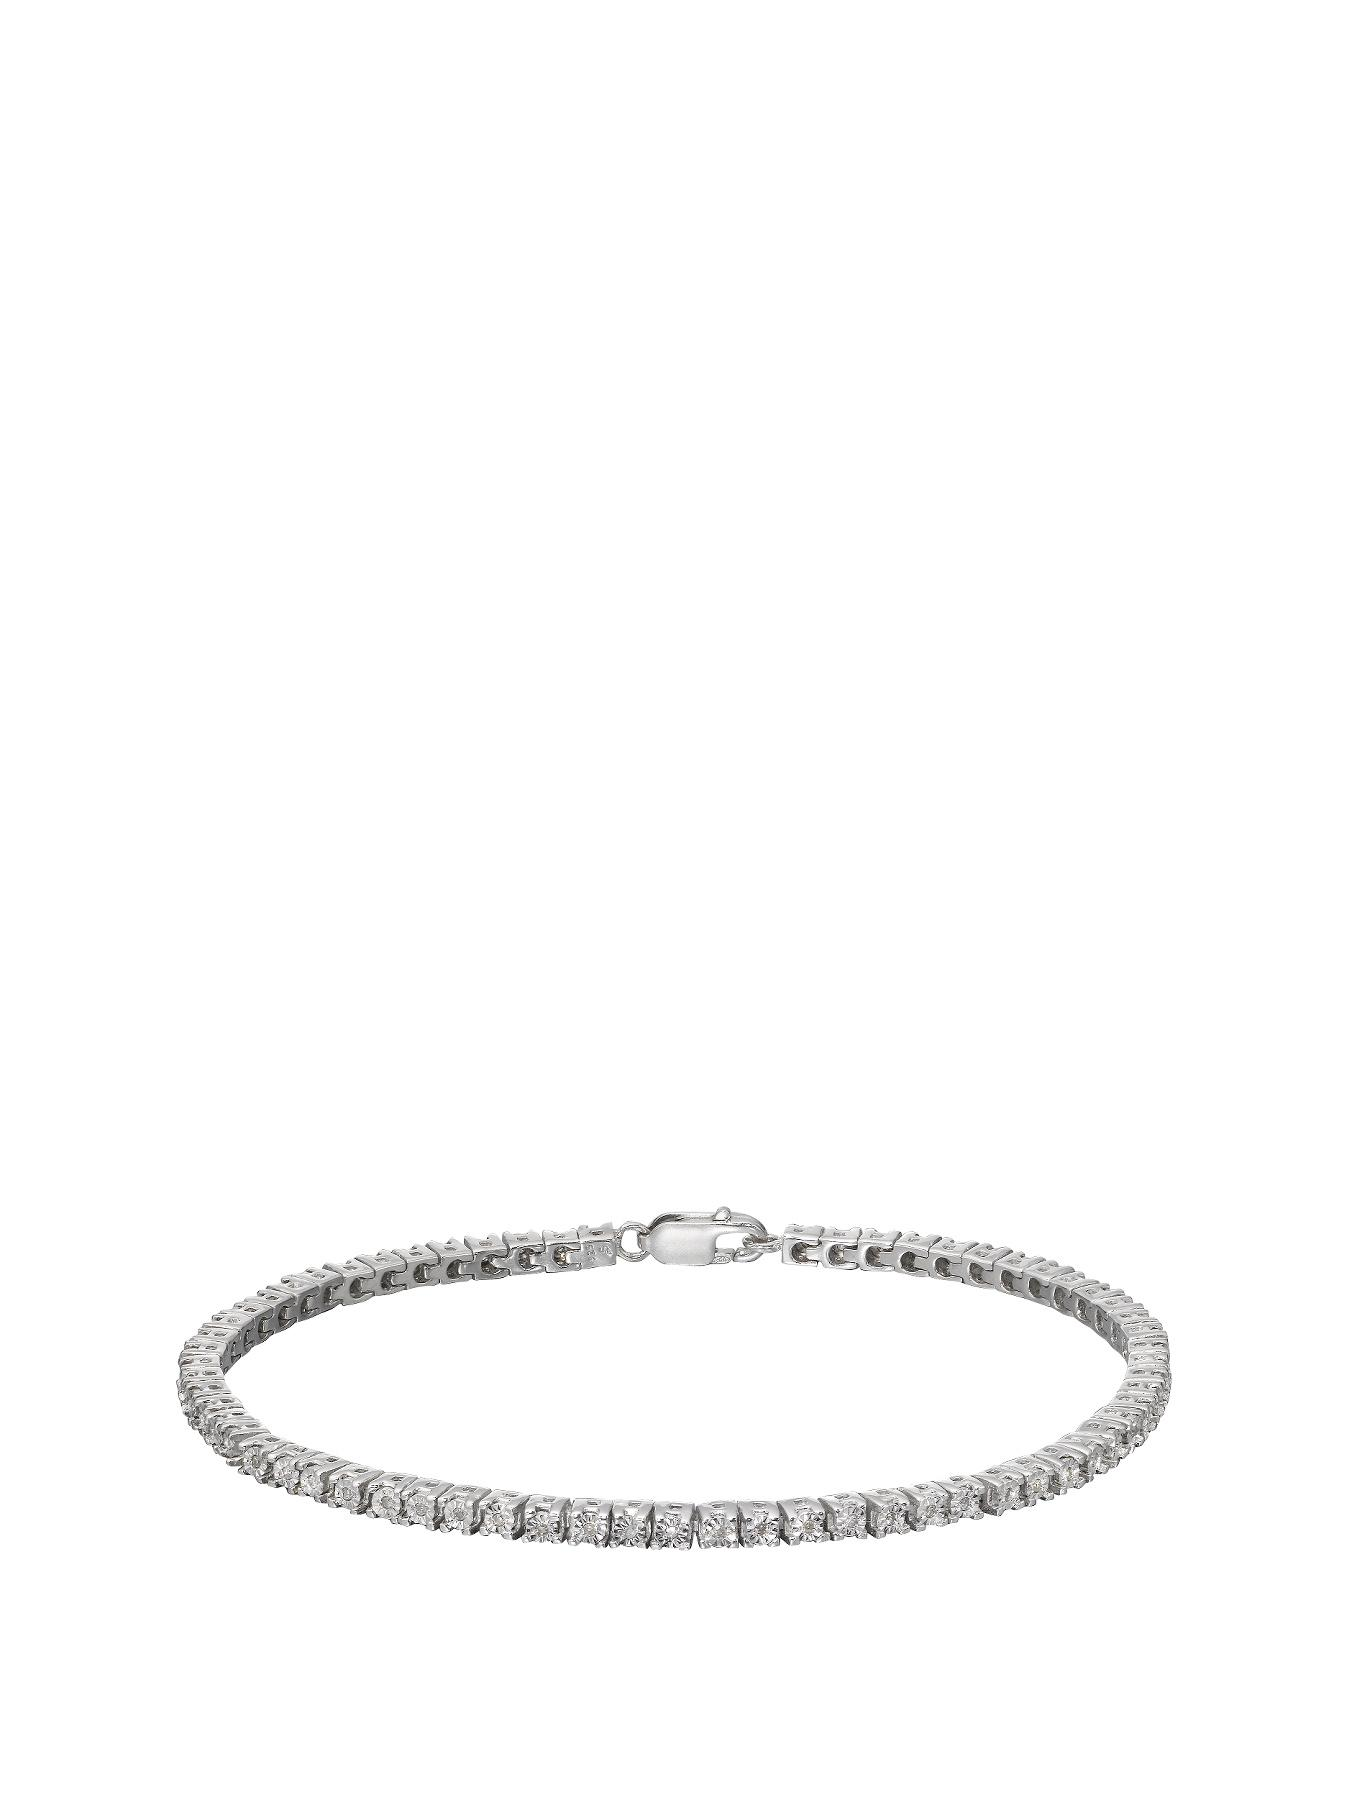 Sterling Silver 25 Point Diamond Tennis Bracelet